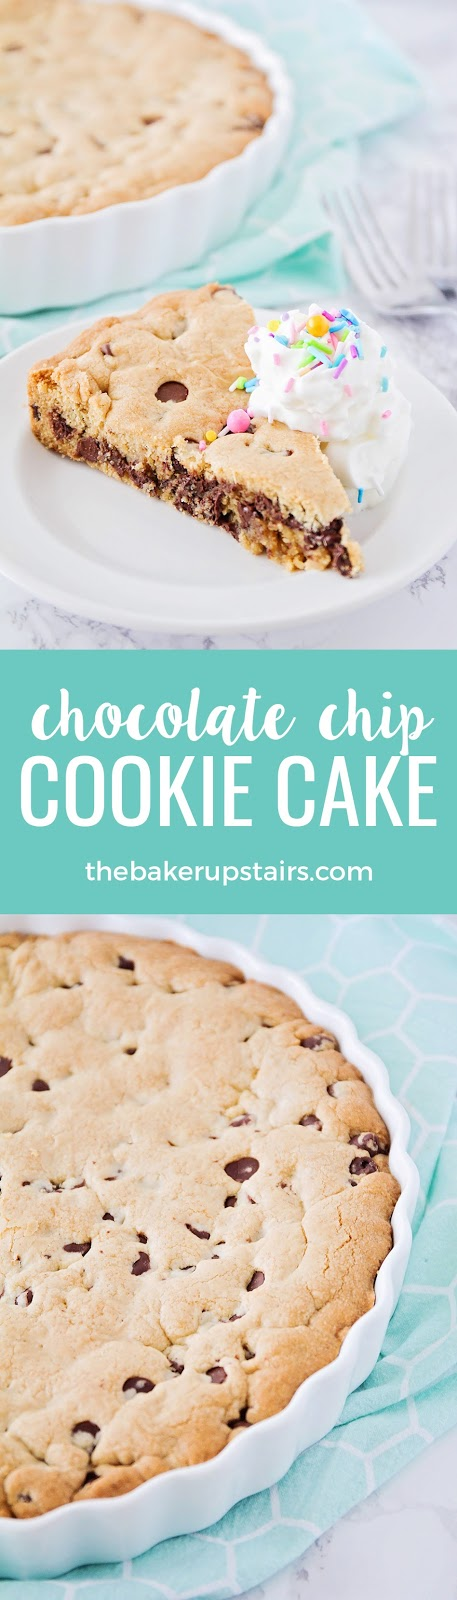 This delicious chocolate chip cookie cake is so easy to make, and perfect for any occasion!